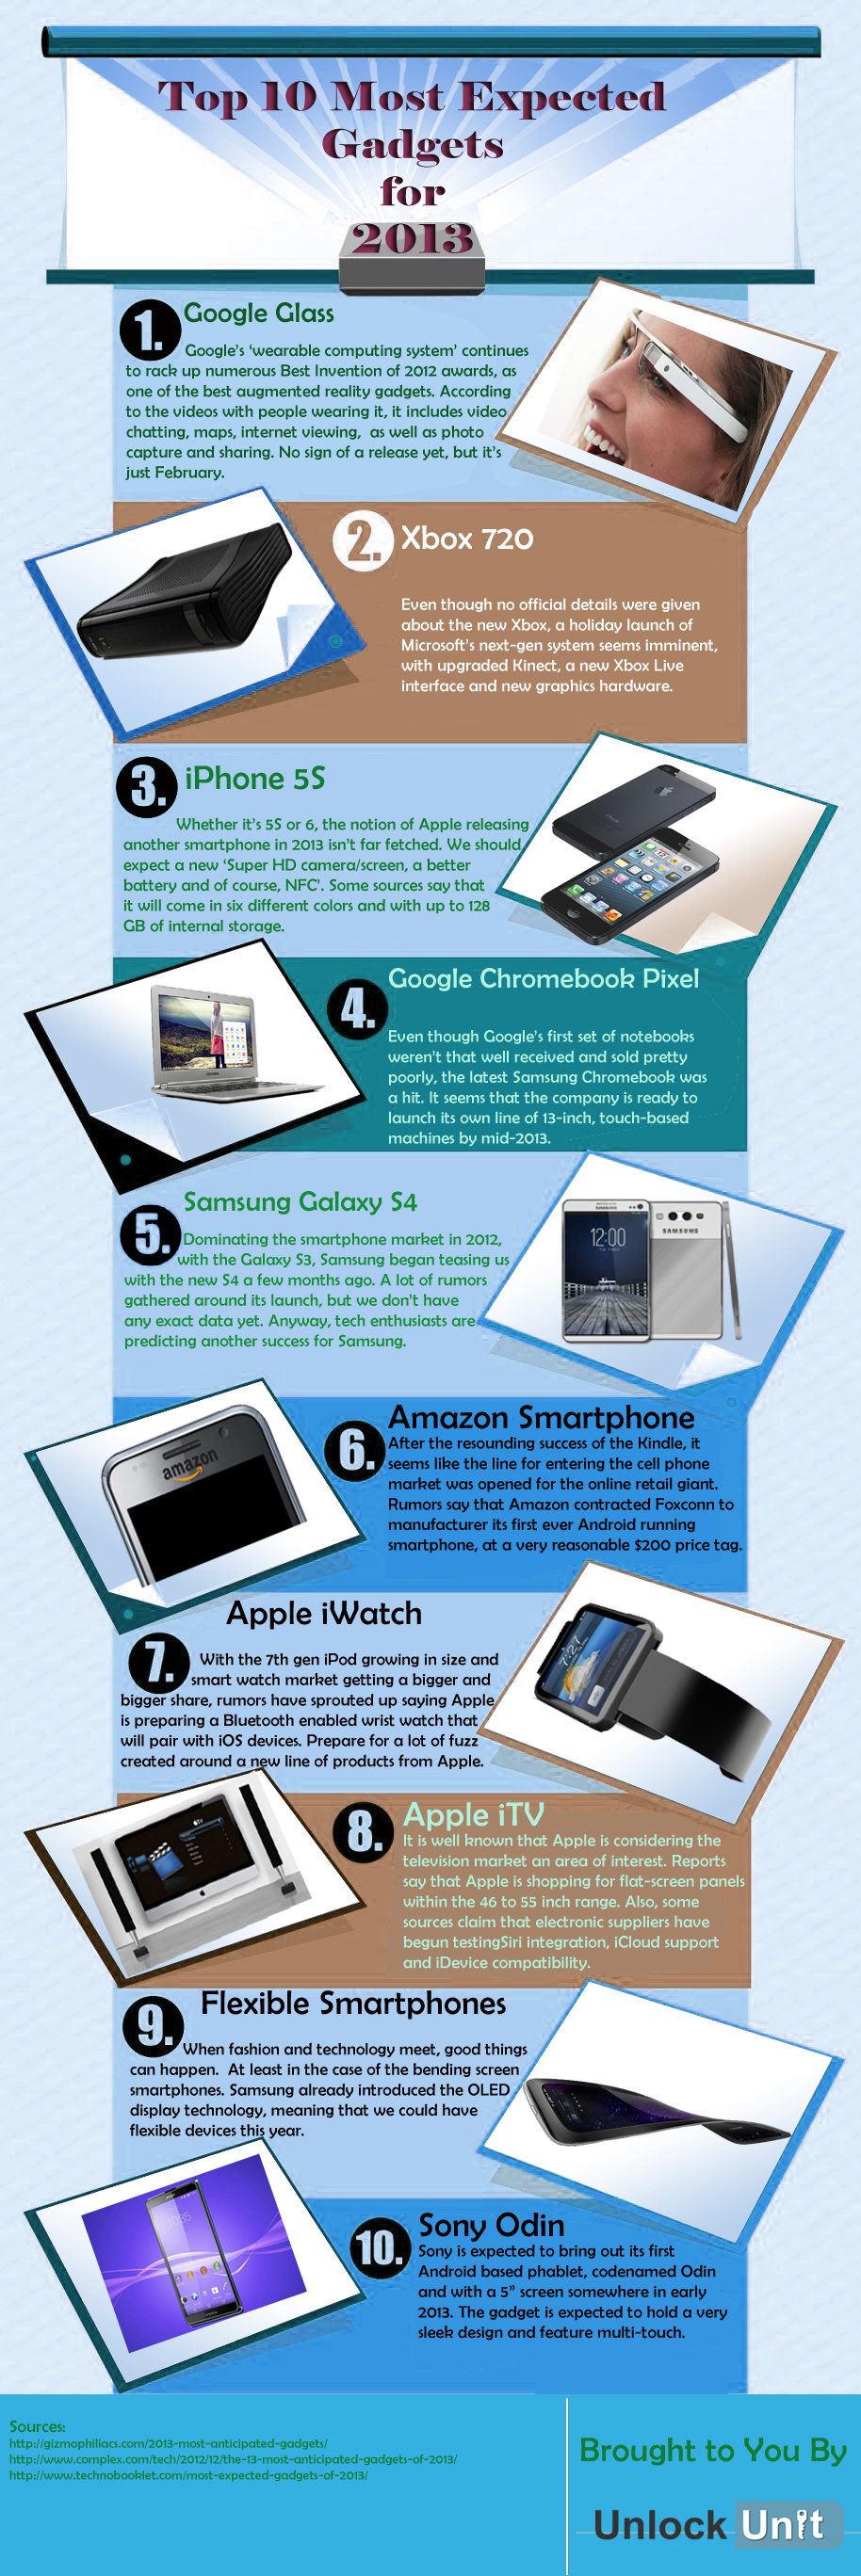 Top 10 Most Expected Gadgets for 2013 Infographic